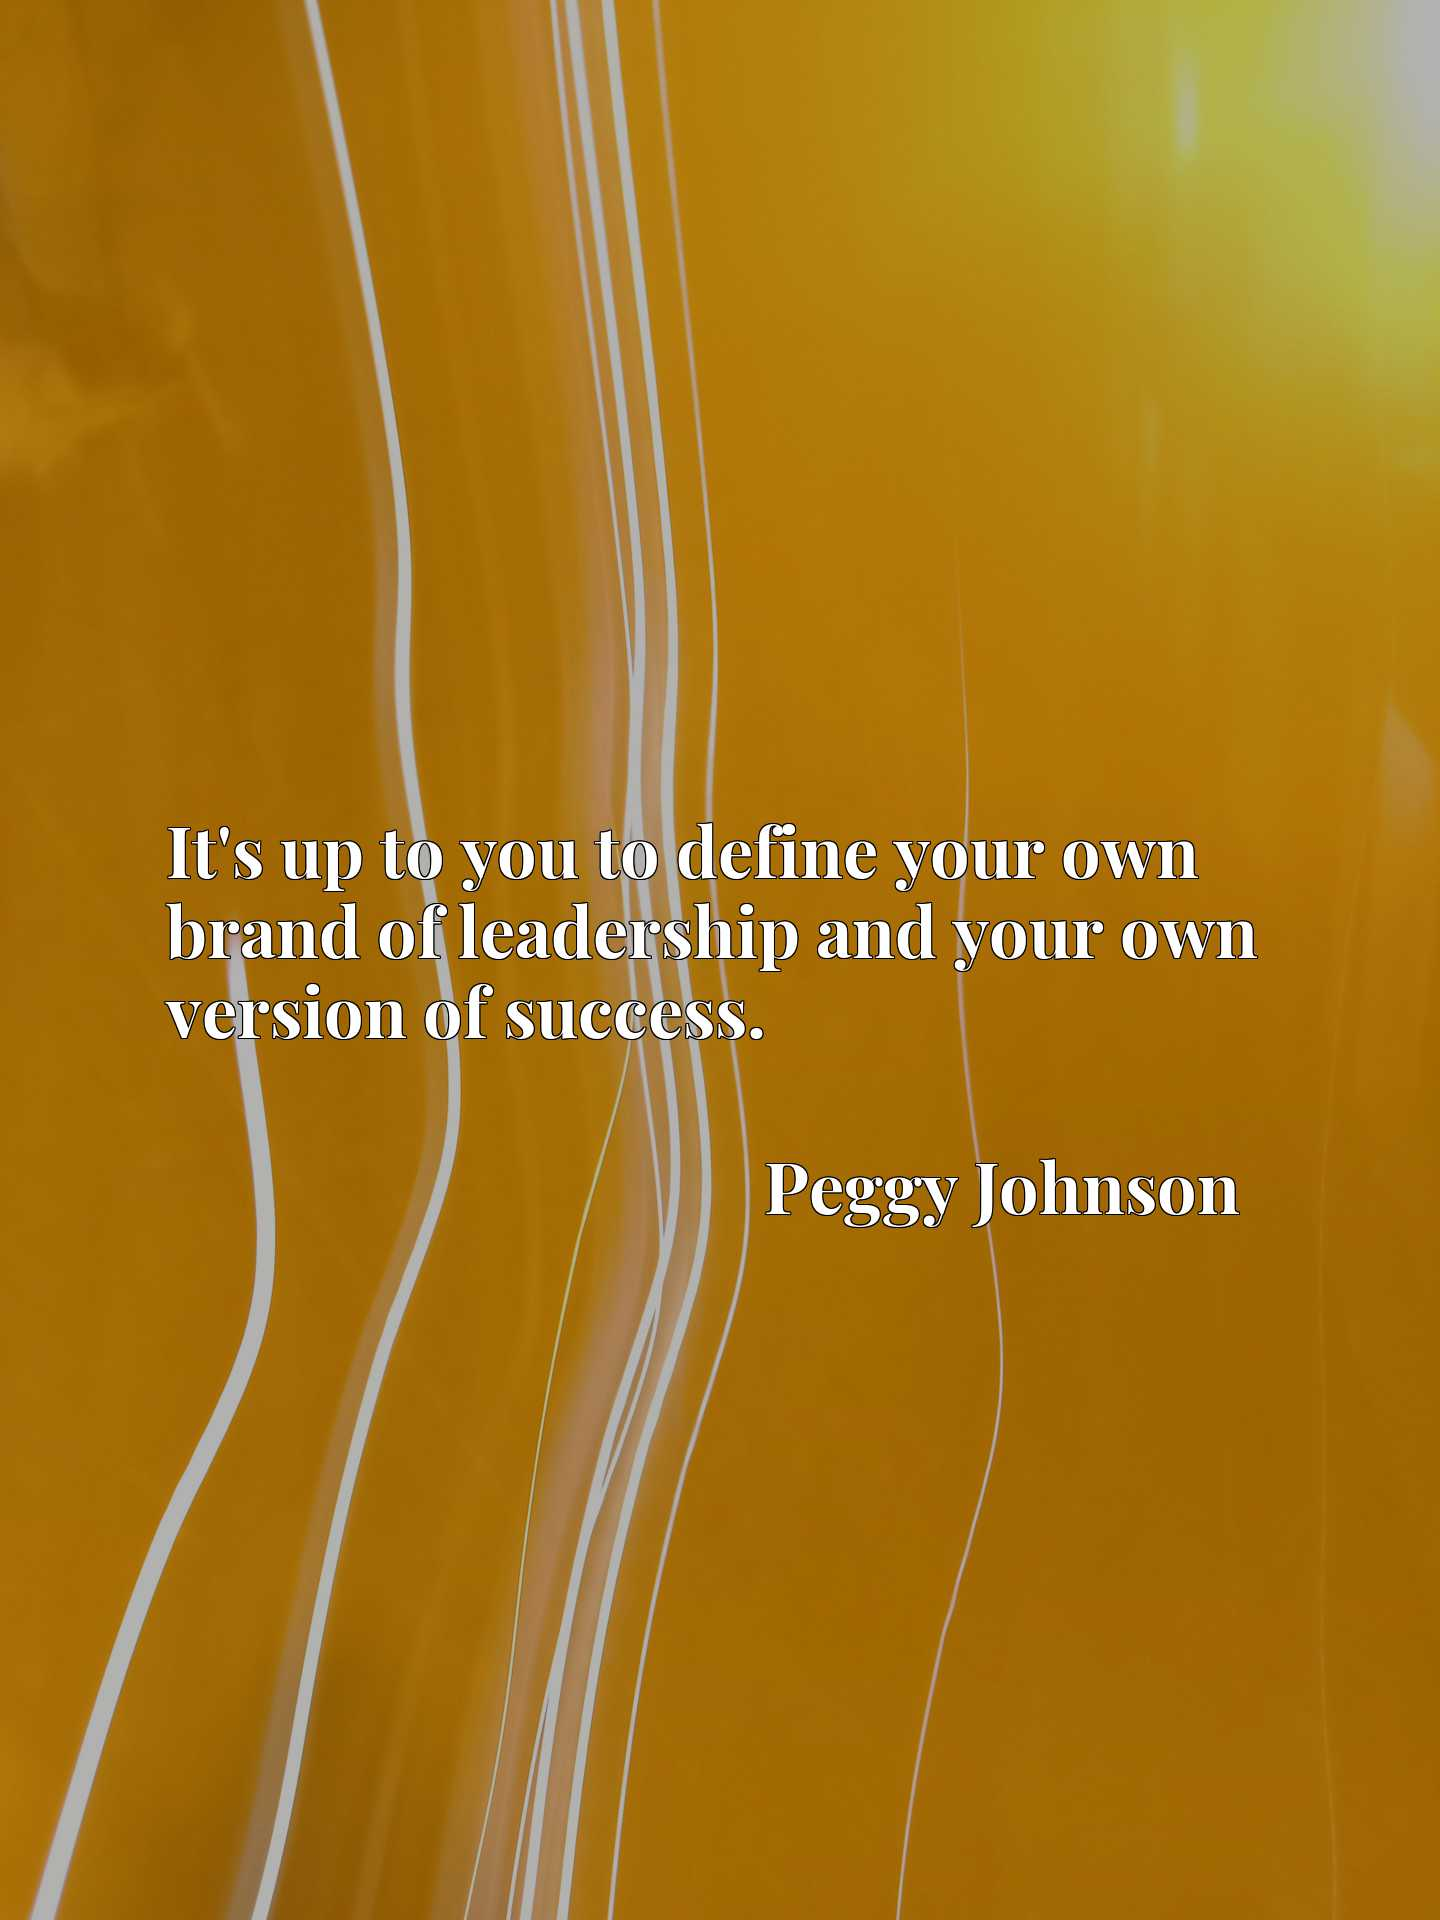 Quote Picture :It's up to you to define your own brand of leadership and your own version of success.